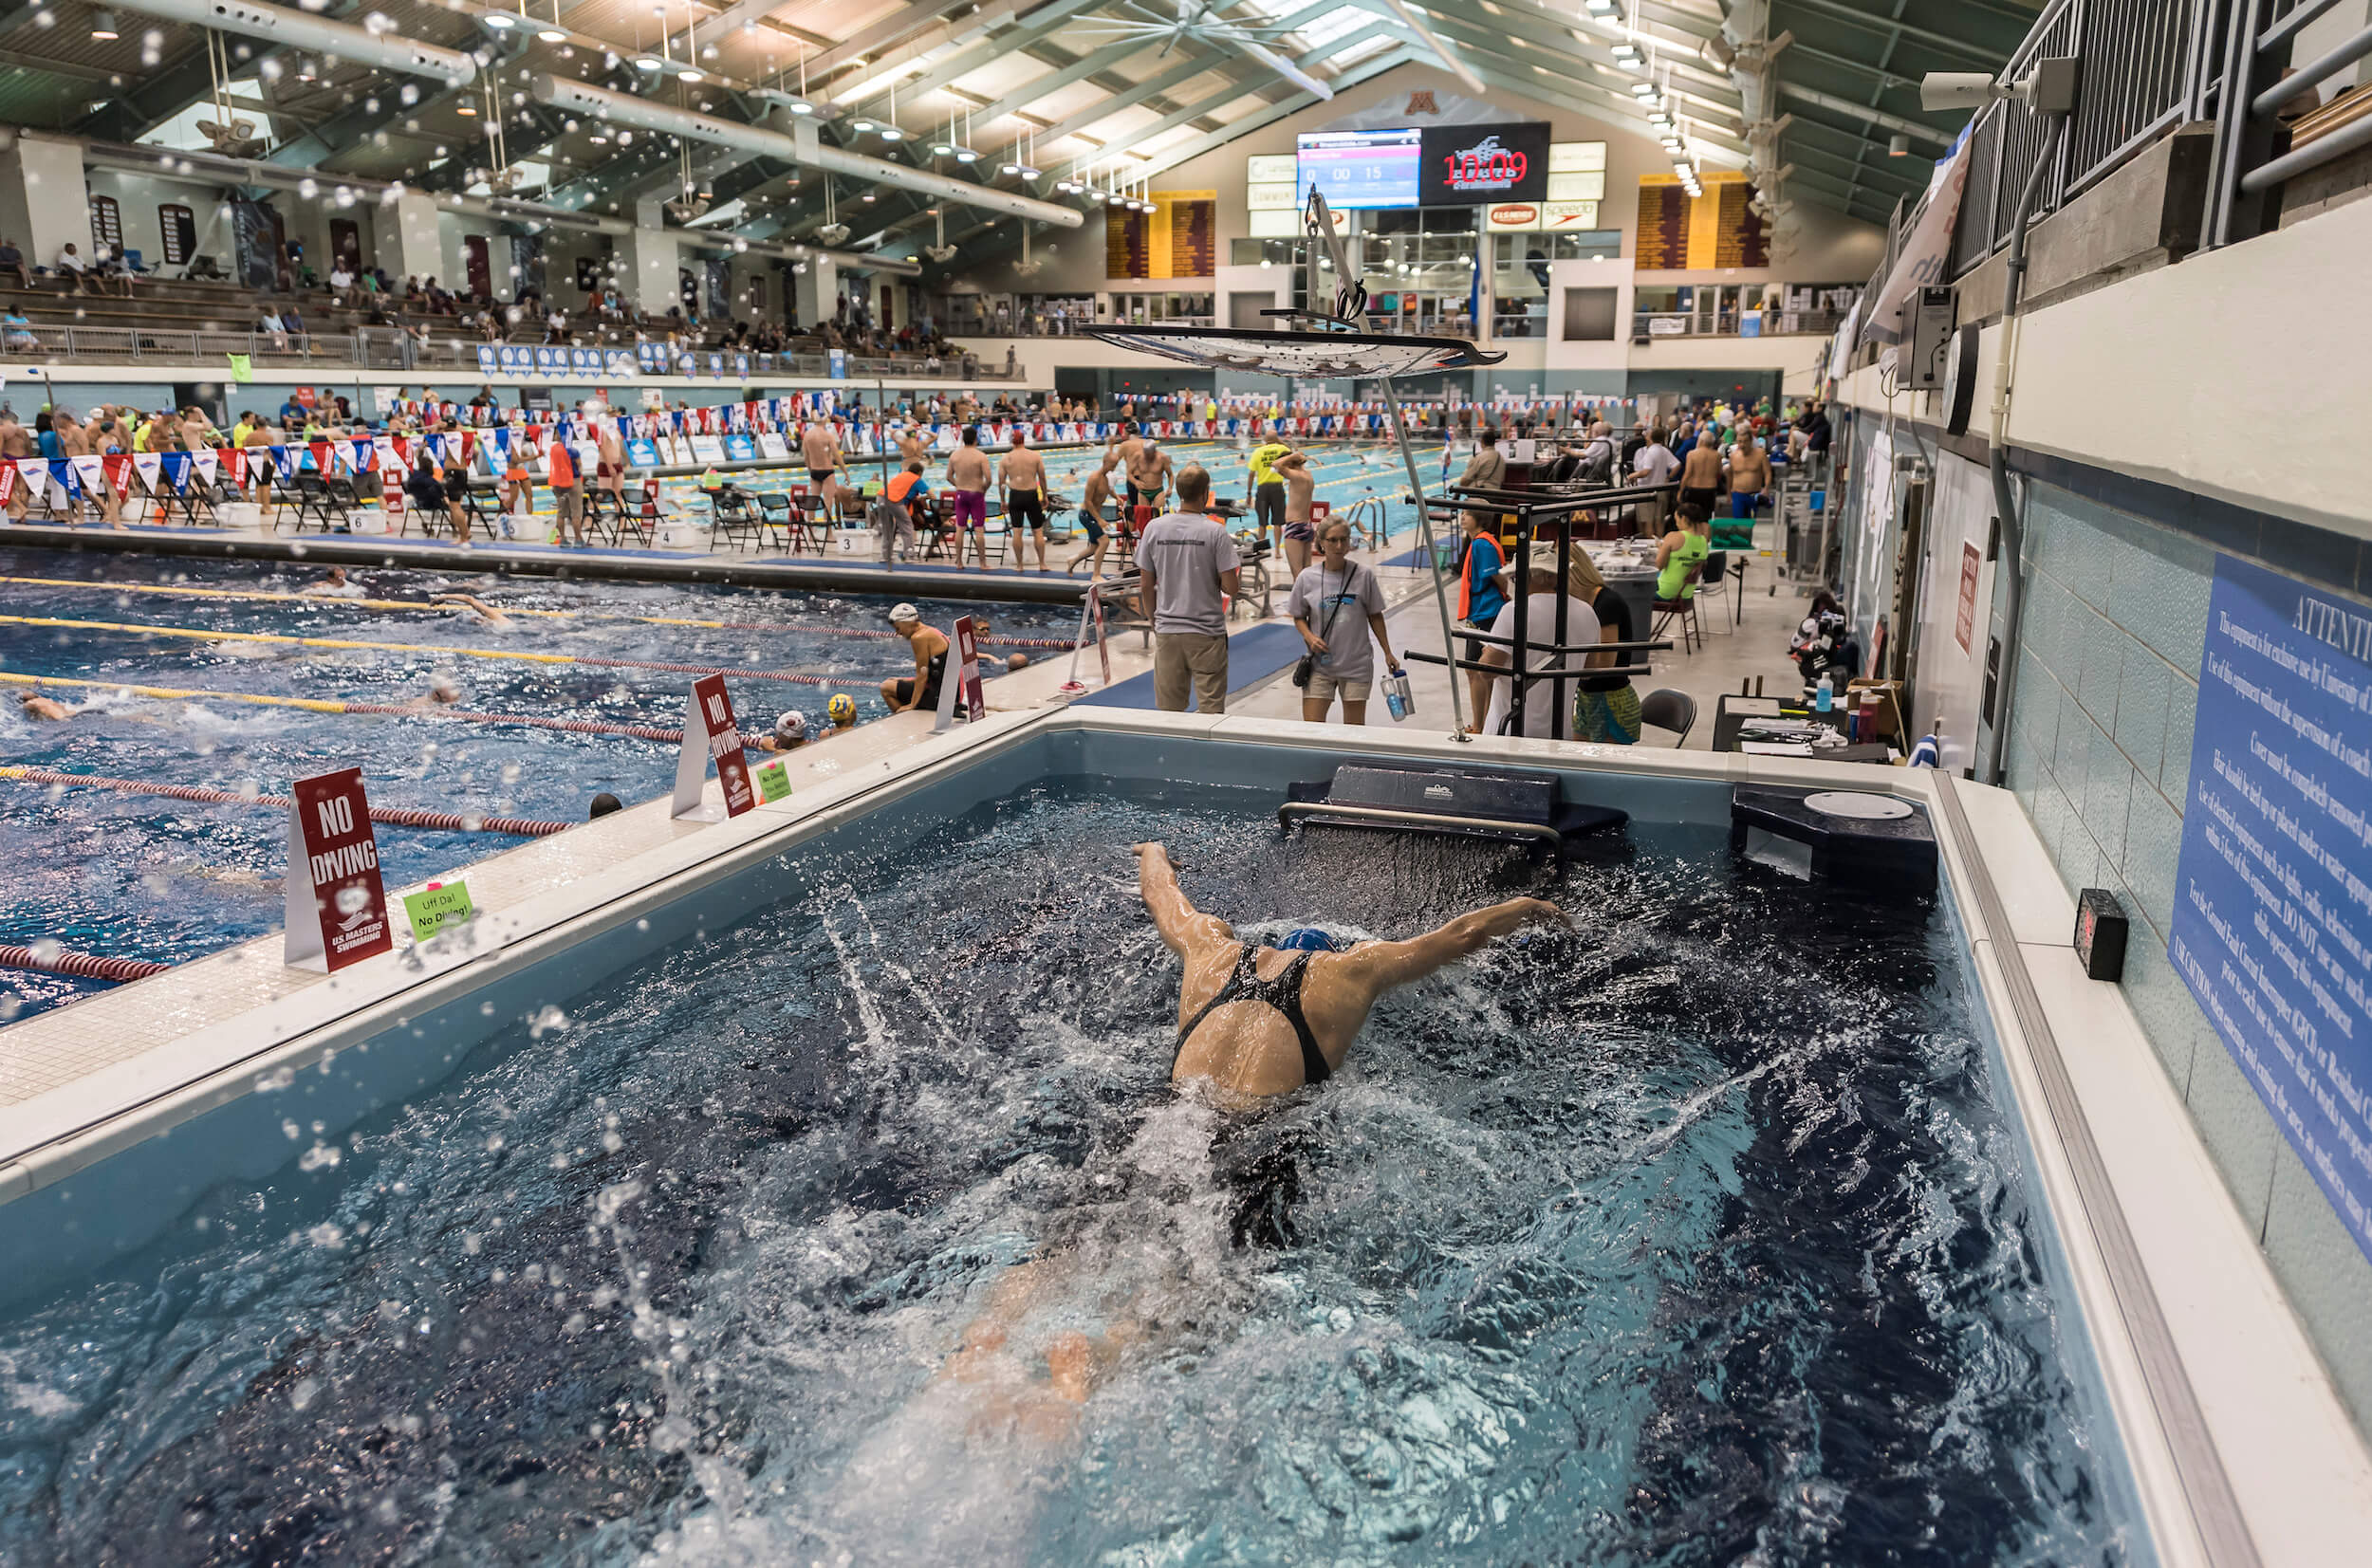 A swimmer doing butterfly stroke in the Elite Endless Pool at the 2017 US Masters Swimming Summer Nationals